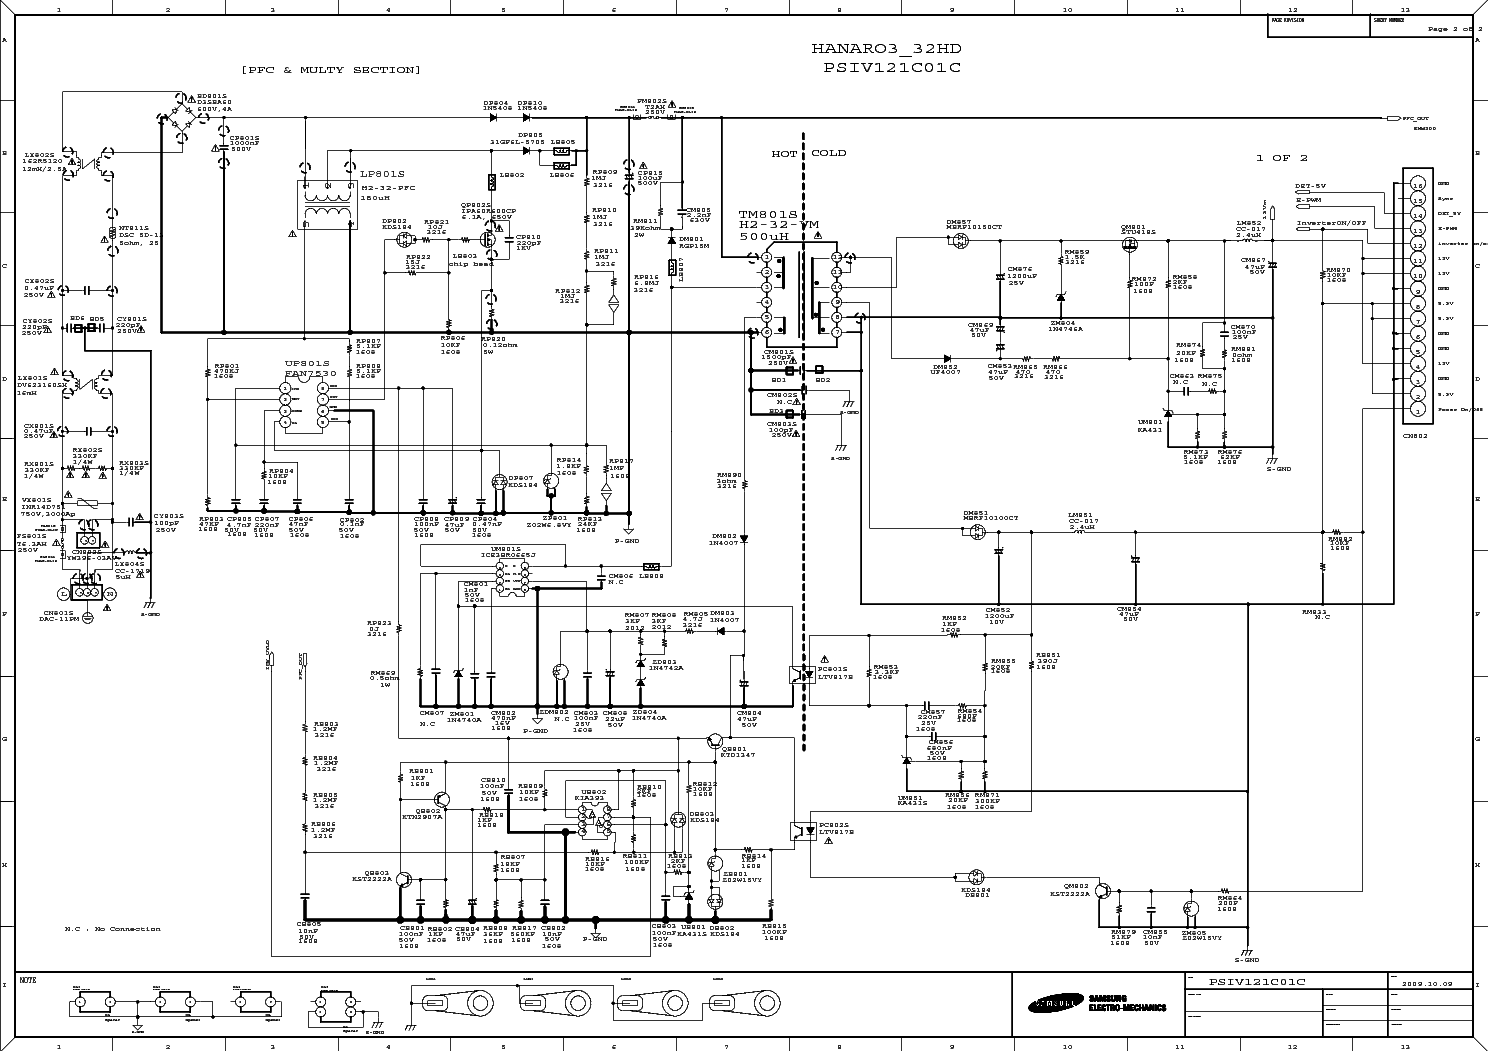 SAMSUNG BN44-00289B Service Manual download, schematics